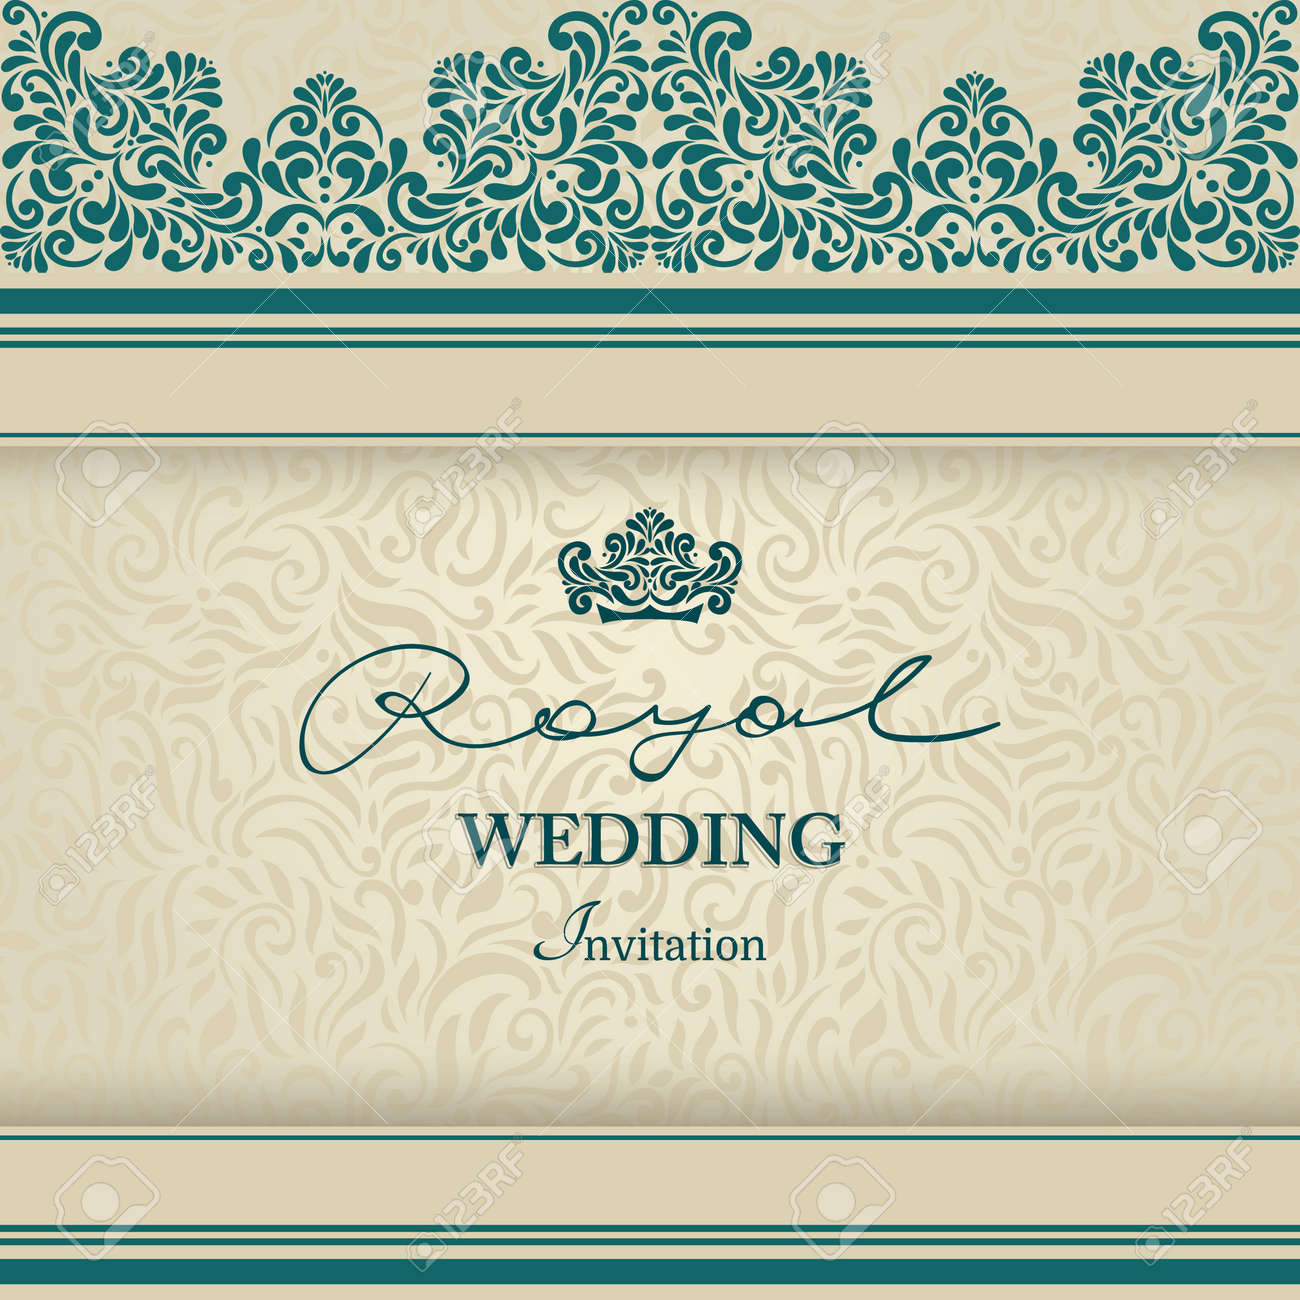 Royal wedding invitation vintage lace border elegant blue royalty royal wedding invitation vintage lace border elegant blue stock vector 37599733 stopboris Images